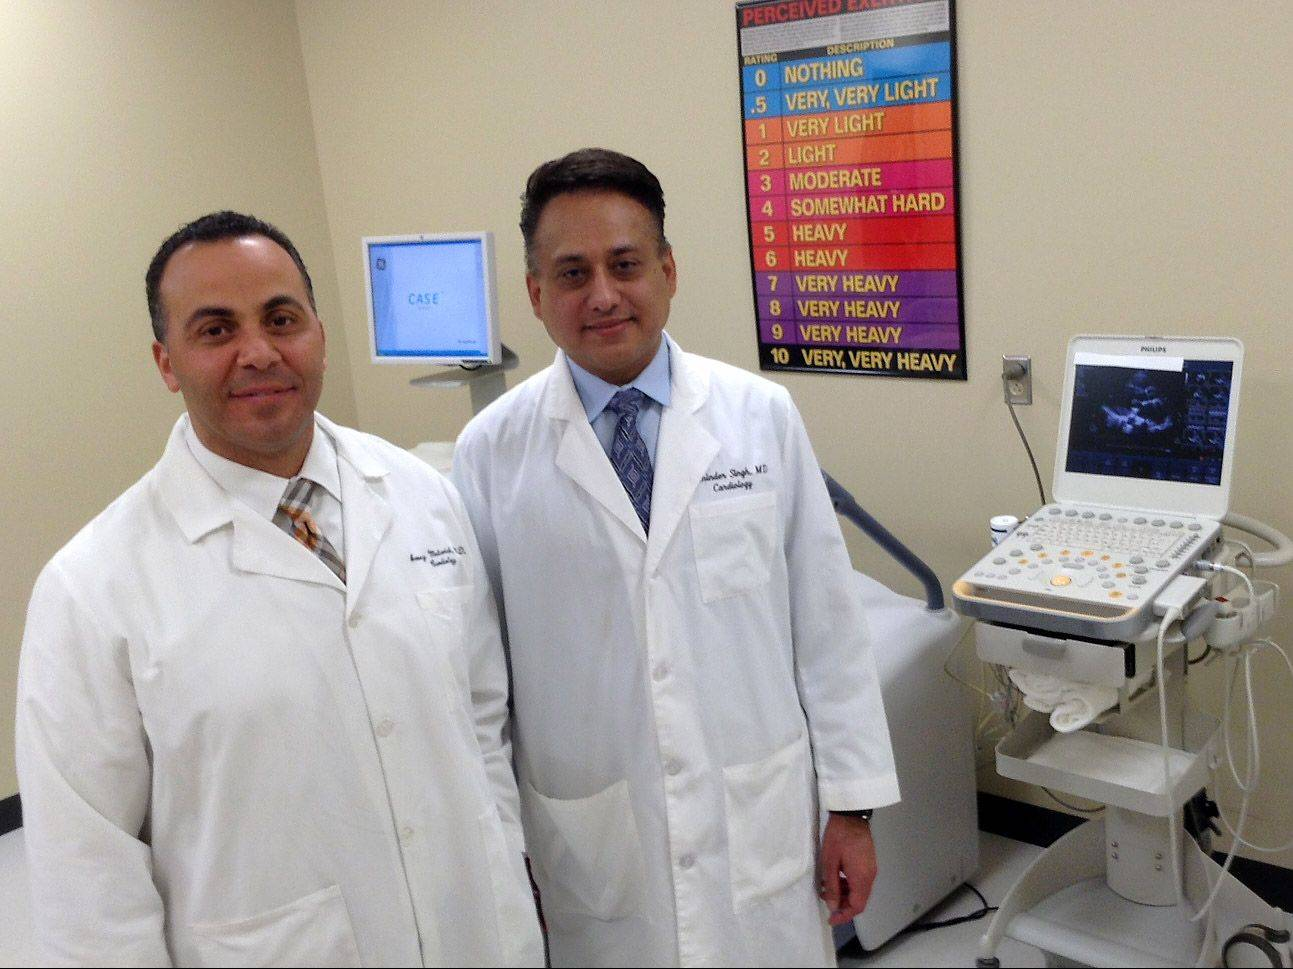 Advocate Sherman Hospital in Elgin is the only hospital in Illinois selected for the American College of Cardiology's new patient navigator program. Pictured here are Dr. Azmey A. Matarieh, medical director of acute myocardial infarction, left, and Dr. Raminder P. Singh, medical director of congestive heart failure.